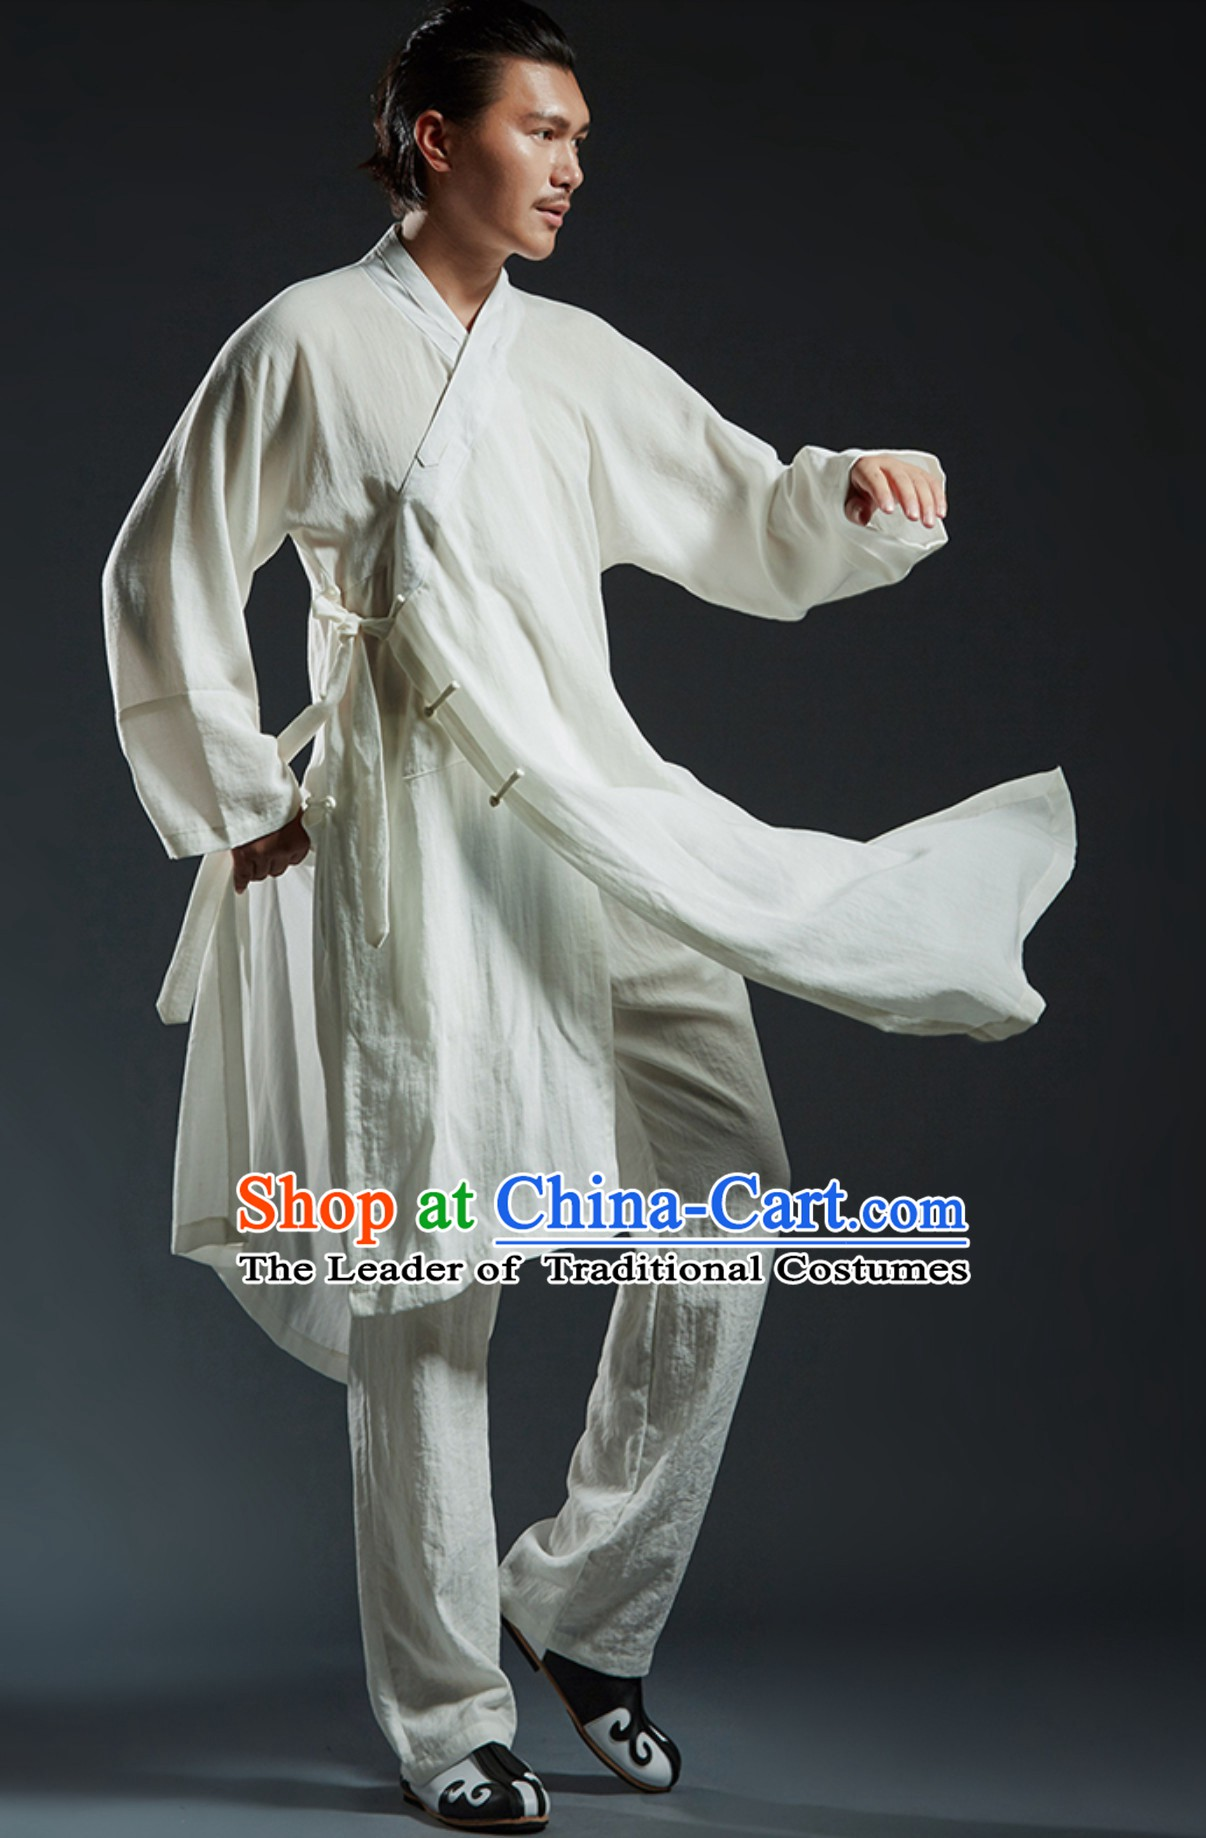 Chinese Classical Tai Chi Wushu Martial Arts Uniform Clothing Complete Set for Men Women Kids